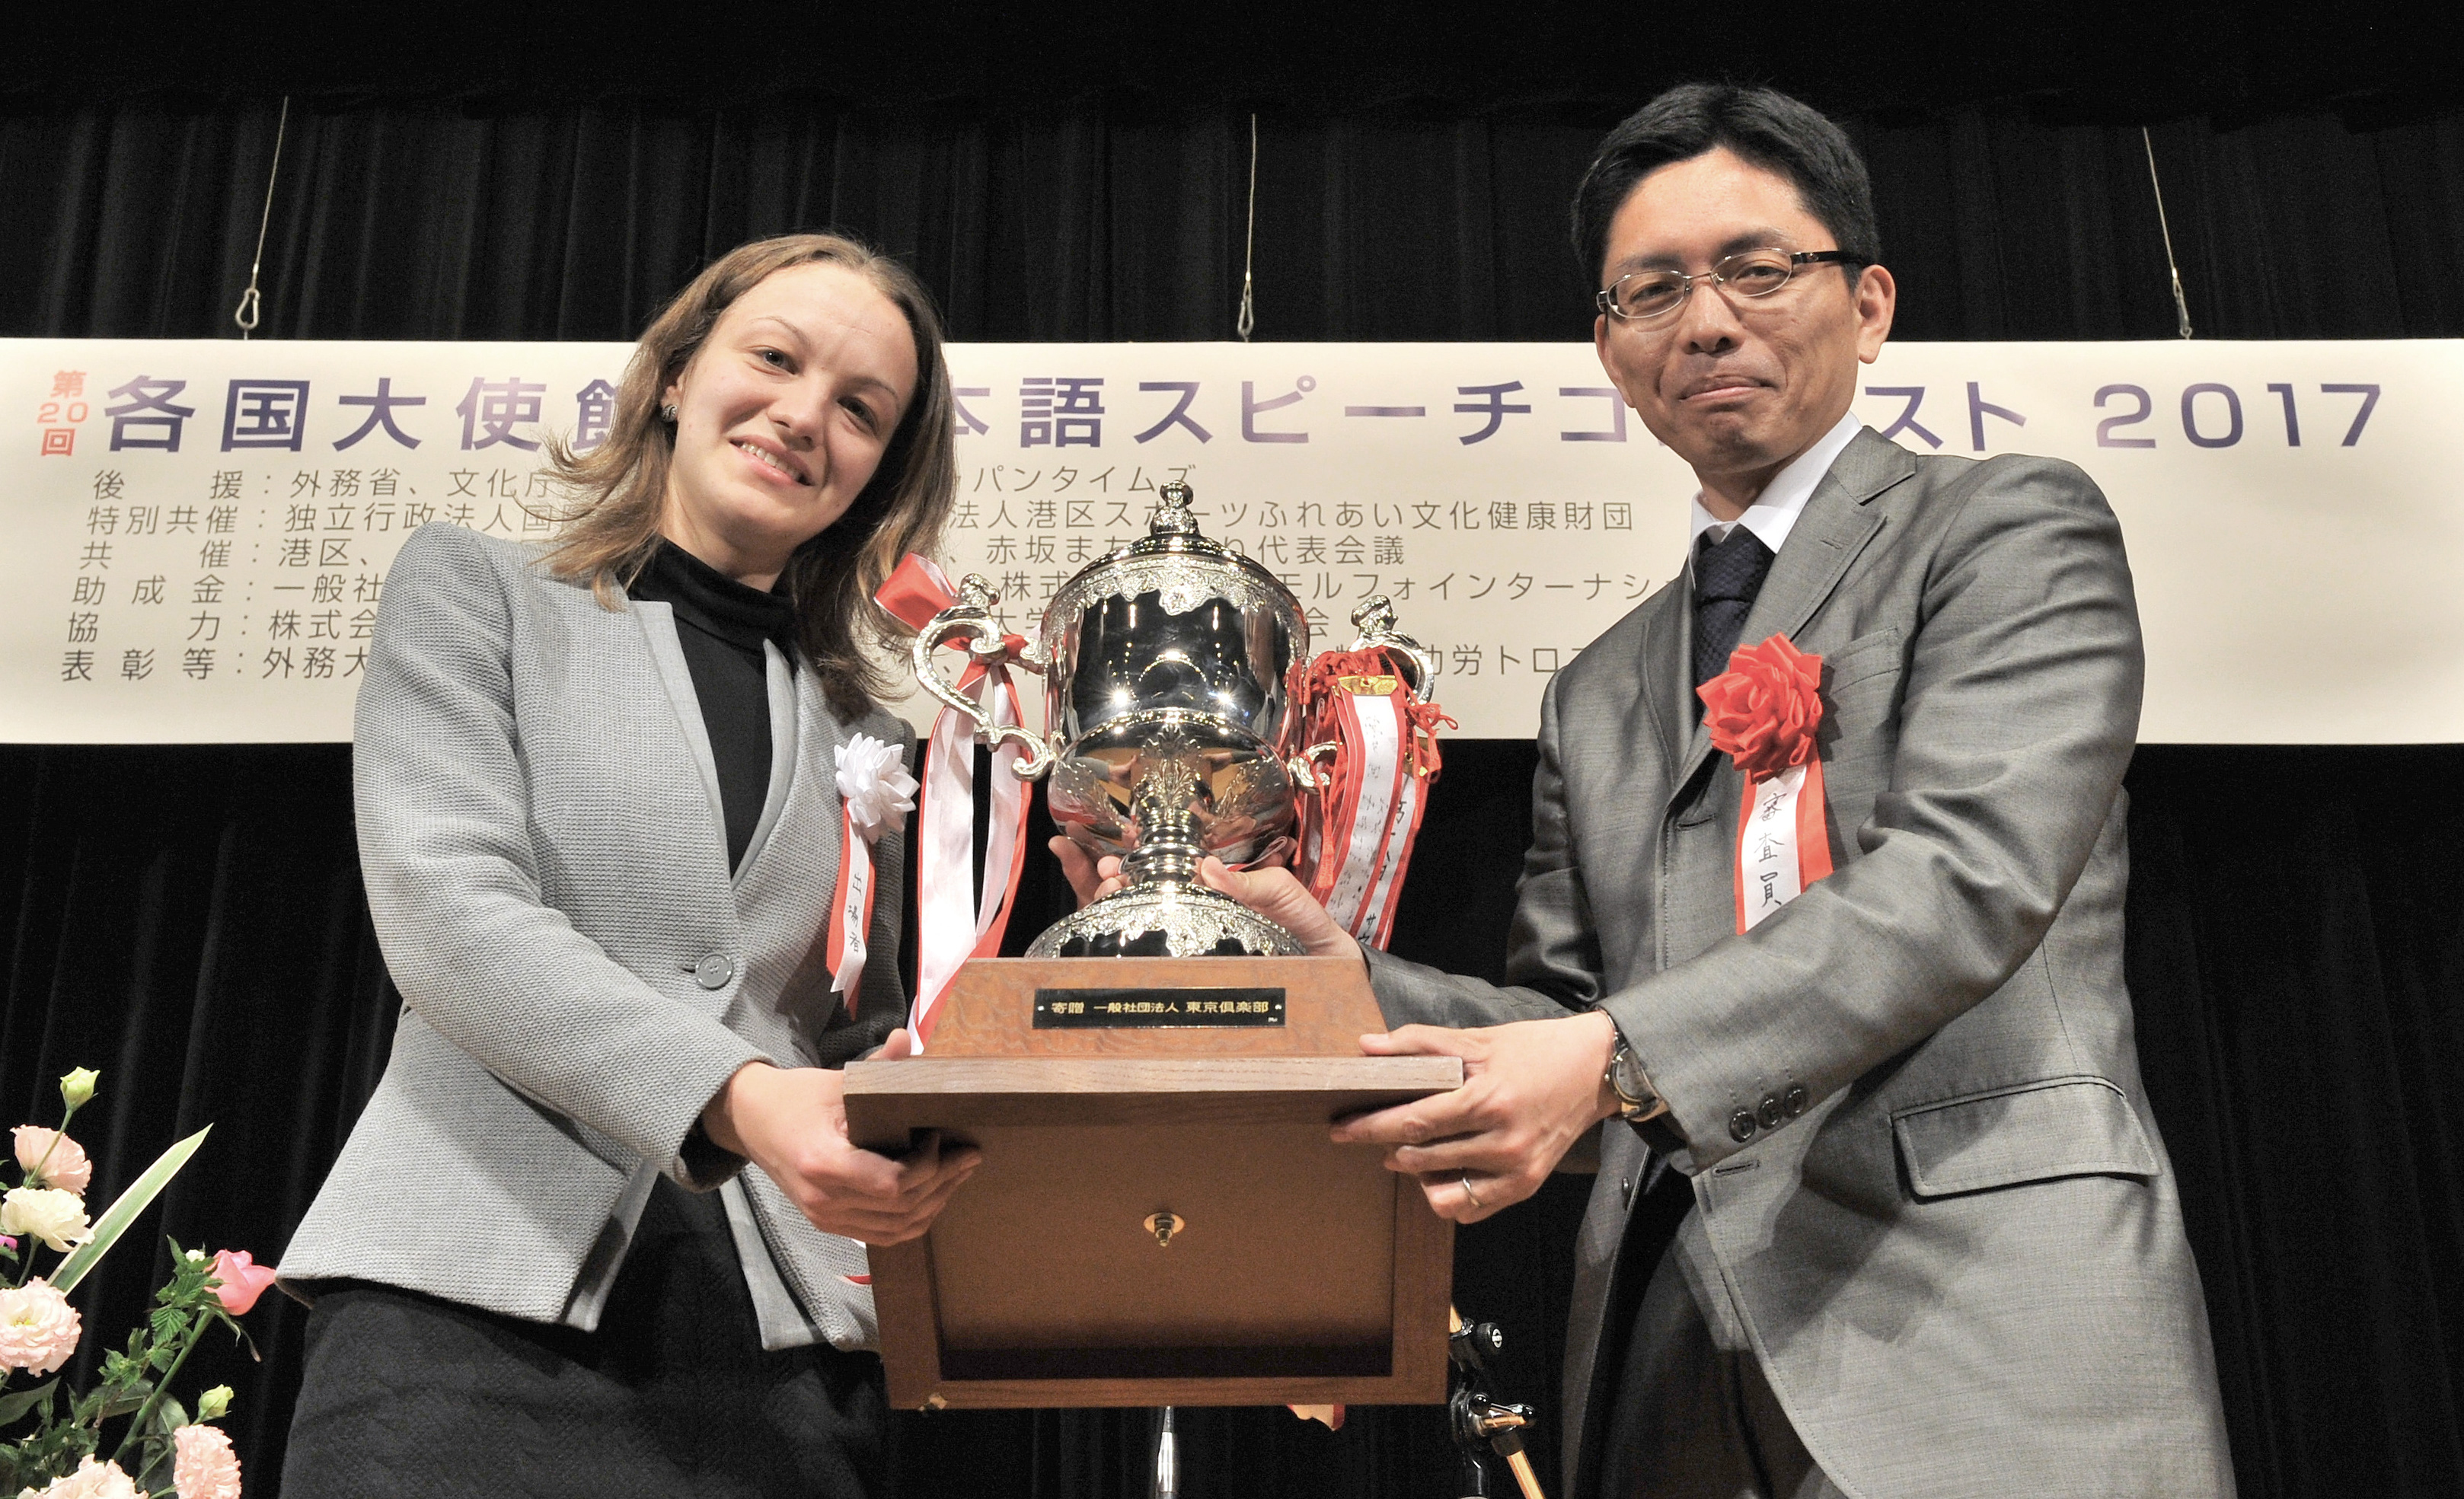 Victoria O. Ryabova of Russia receives the Foreign Minister's Award from Foreign Ministry Director of Cultural Affairs and Overseas Public Relations Daisuke Okabe at the 20th annual Japanese Speech Contest for Foreign Embassy Officials in Tokyo. |  YOSHIAKI MIURA